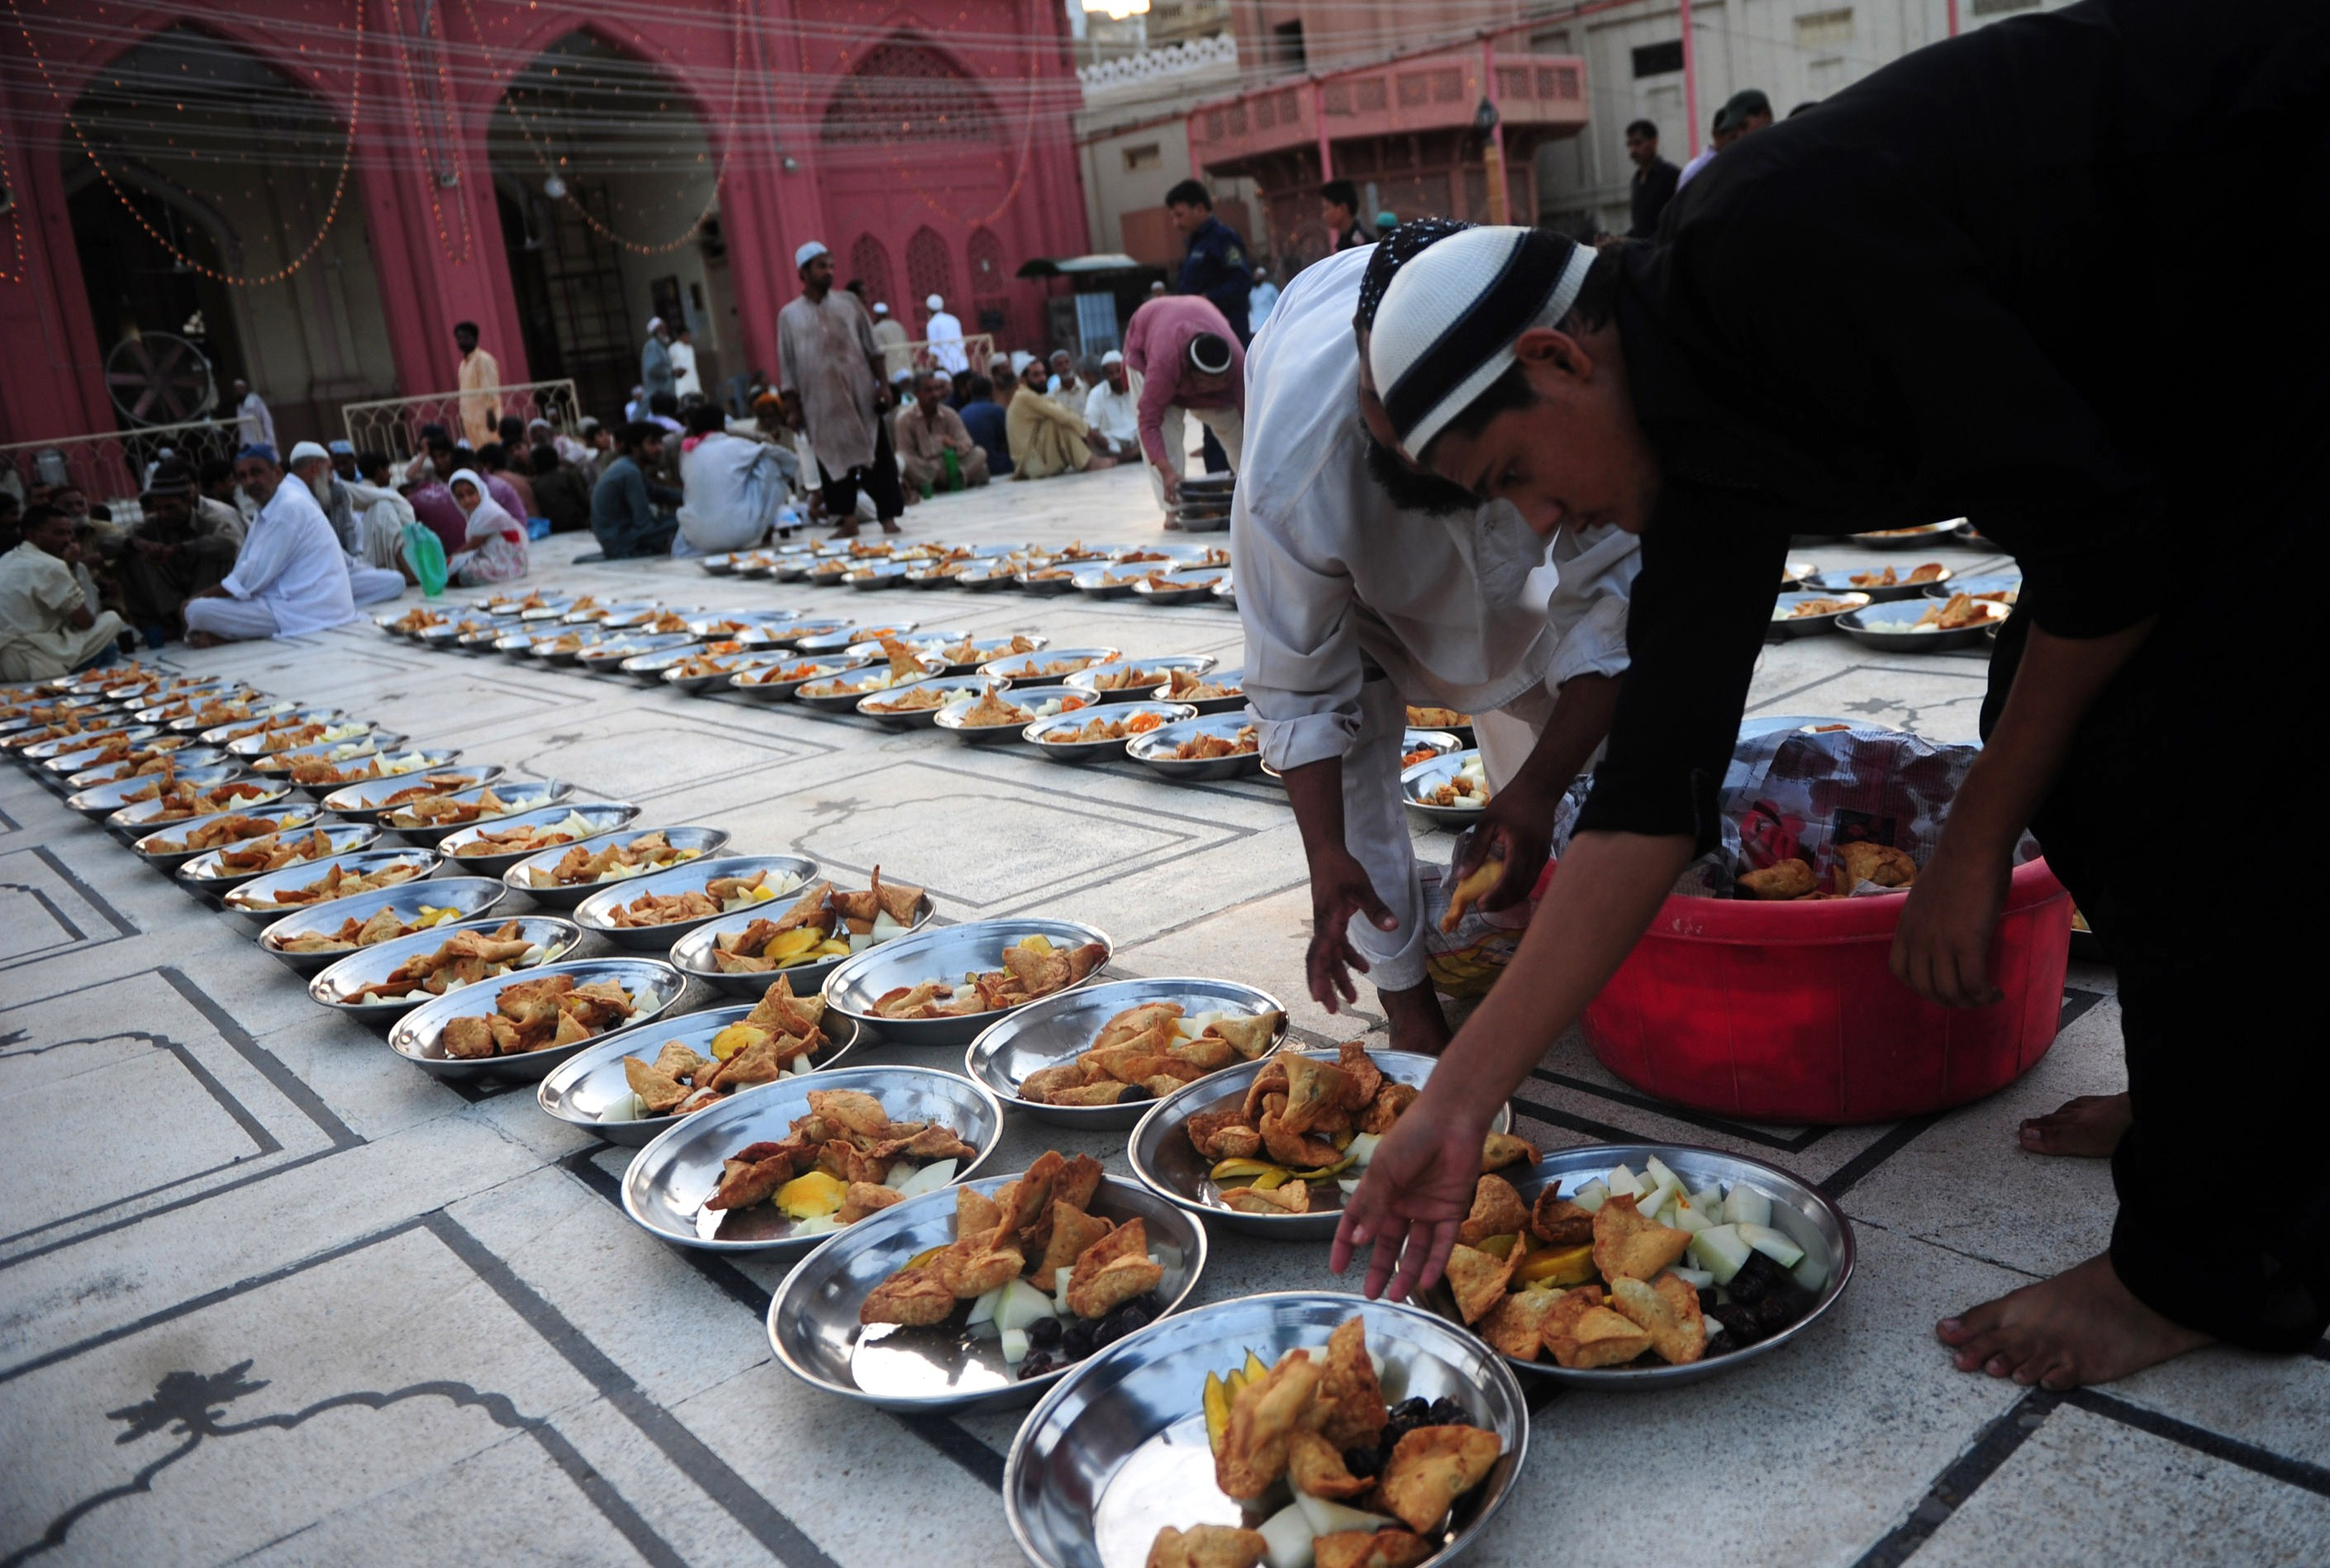 A Pakistani Muslim man arranges Iftar food for Muslim devotees before they break their fast during the holy fasting month of Ramadan in Karachi on June 30, 2014.